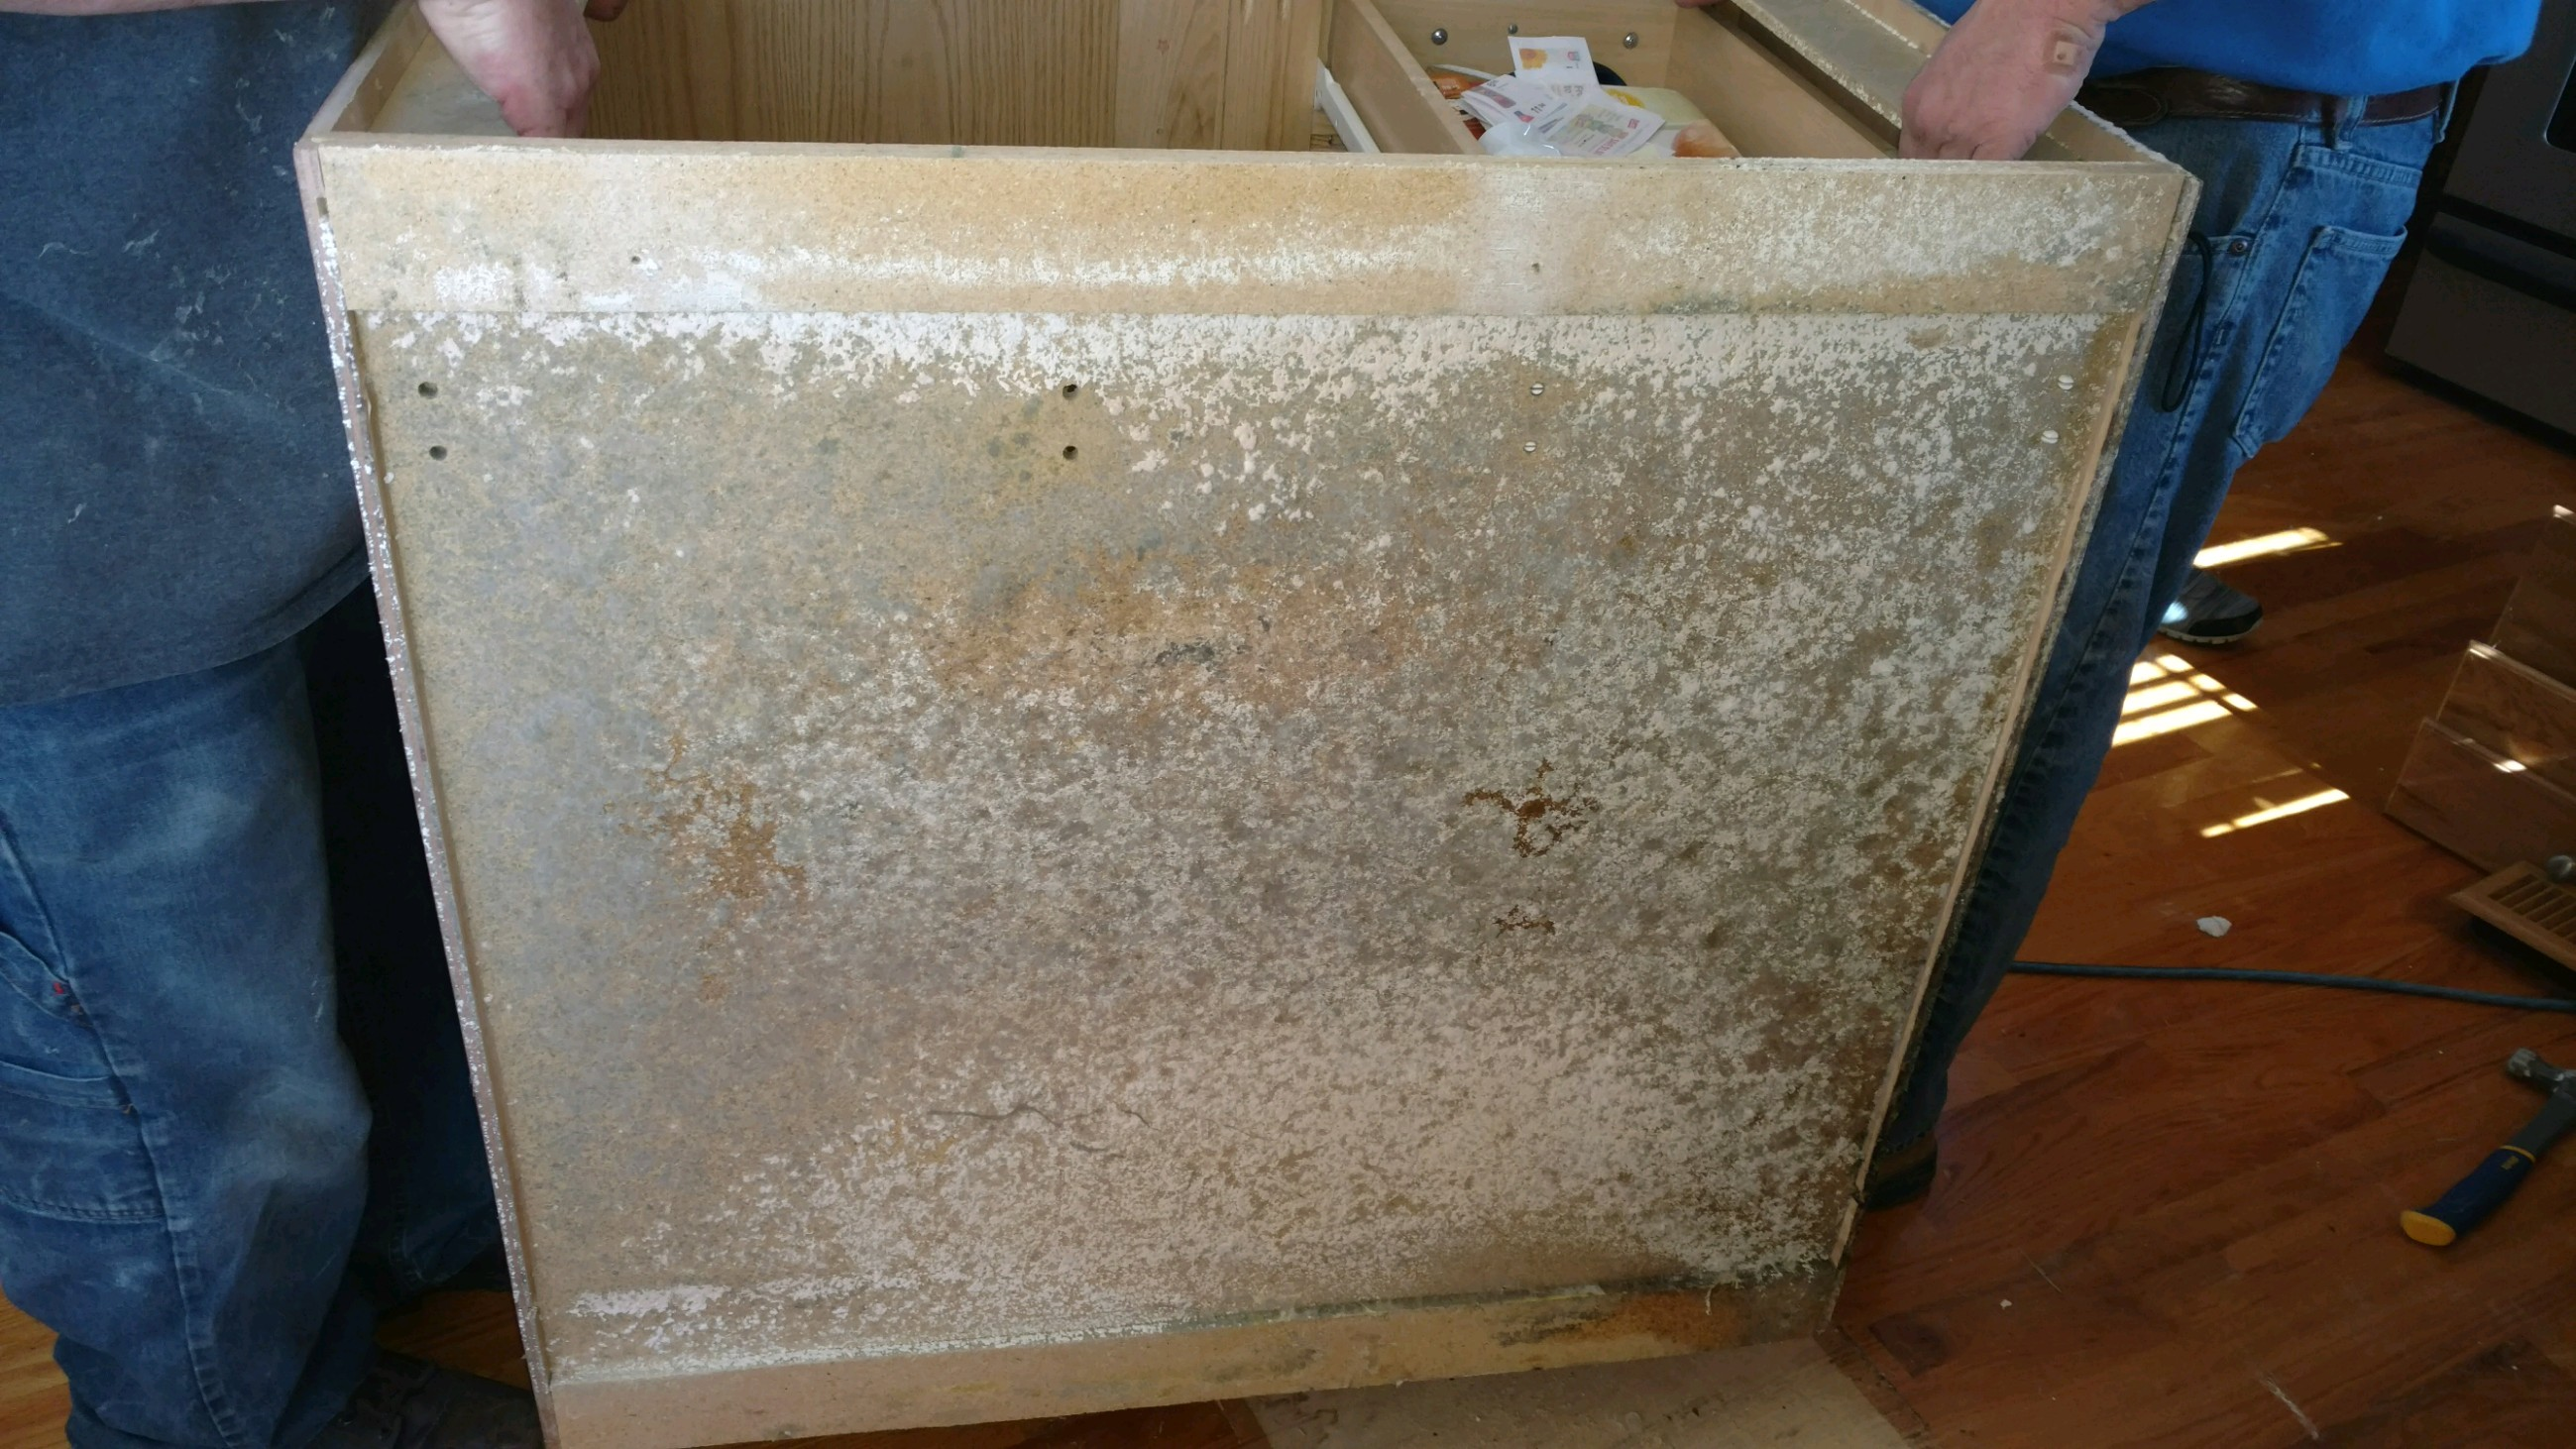 Mold Growth on Back of Cabinet